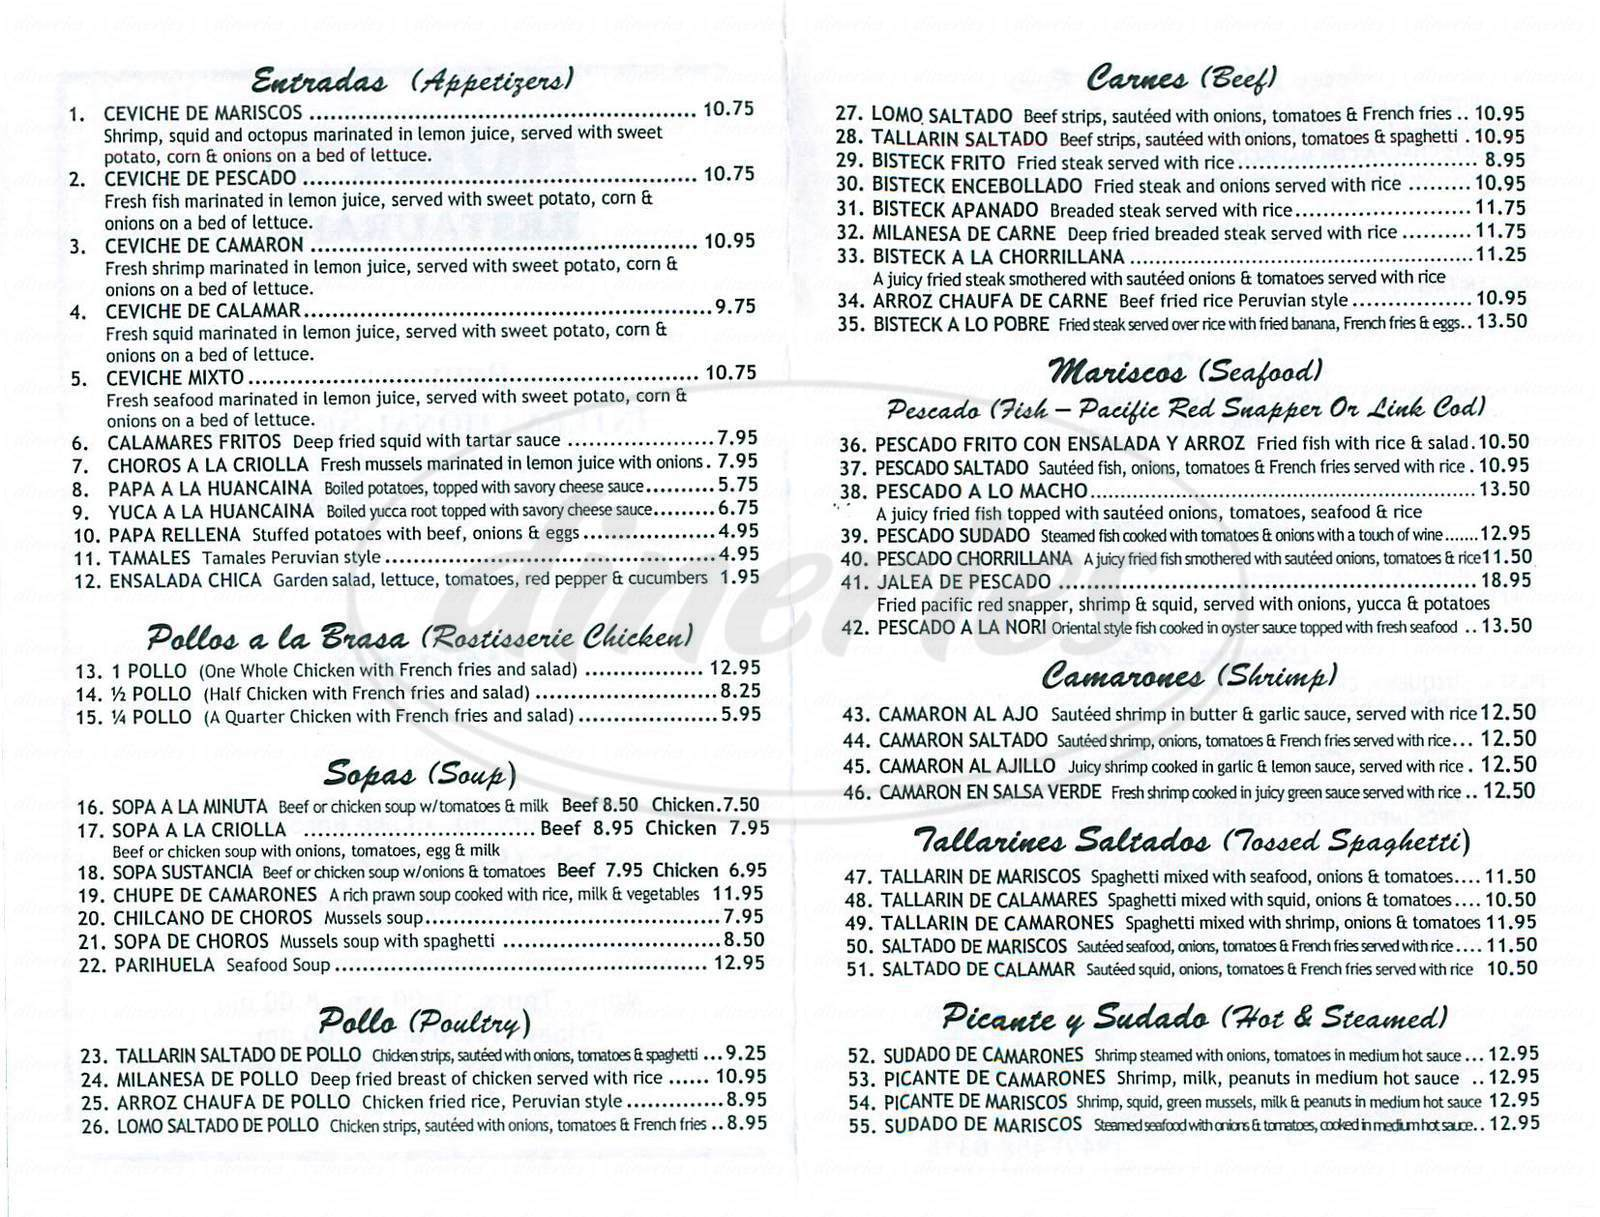 menu for Norys Restaurant